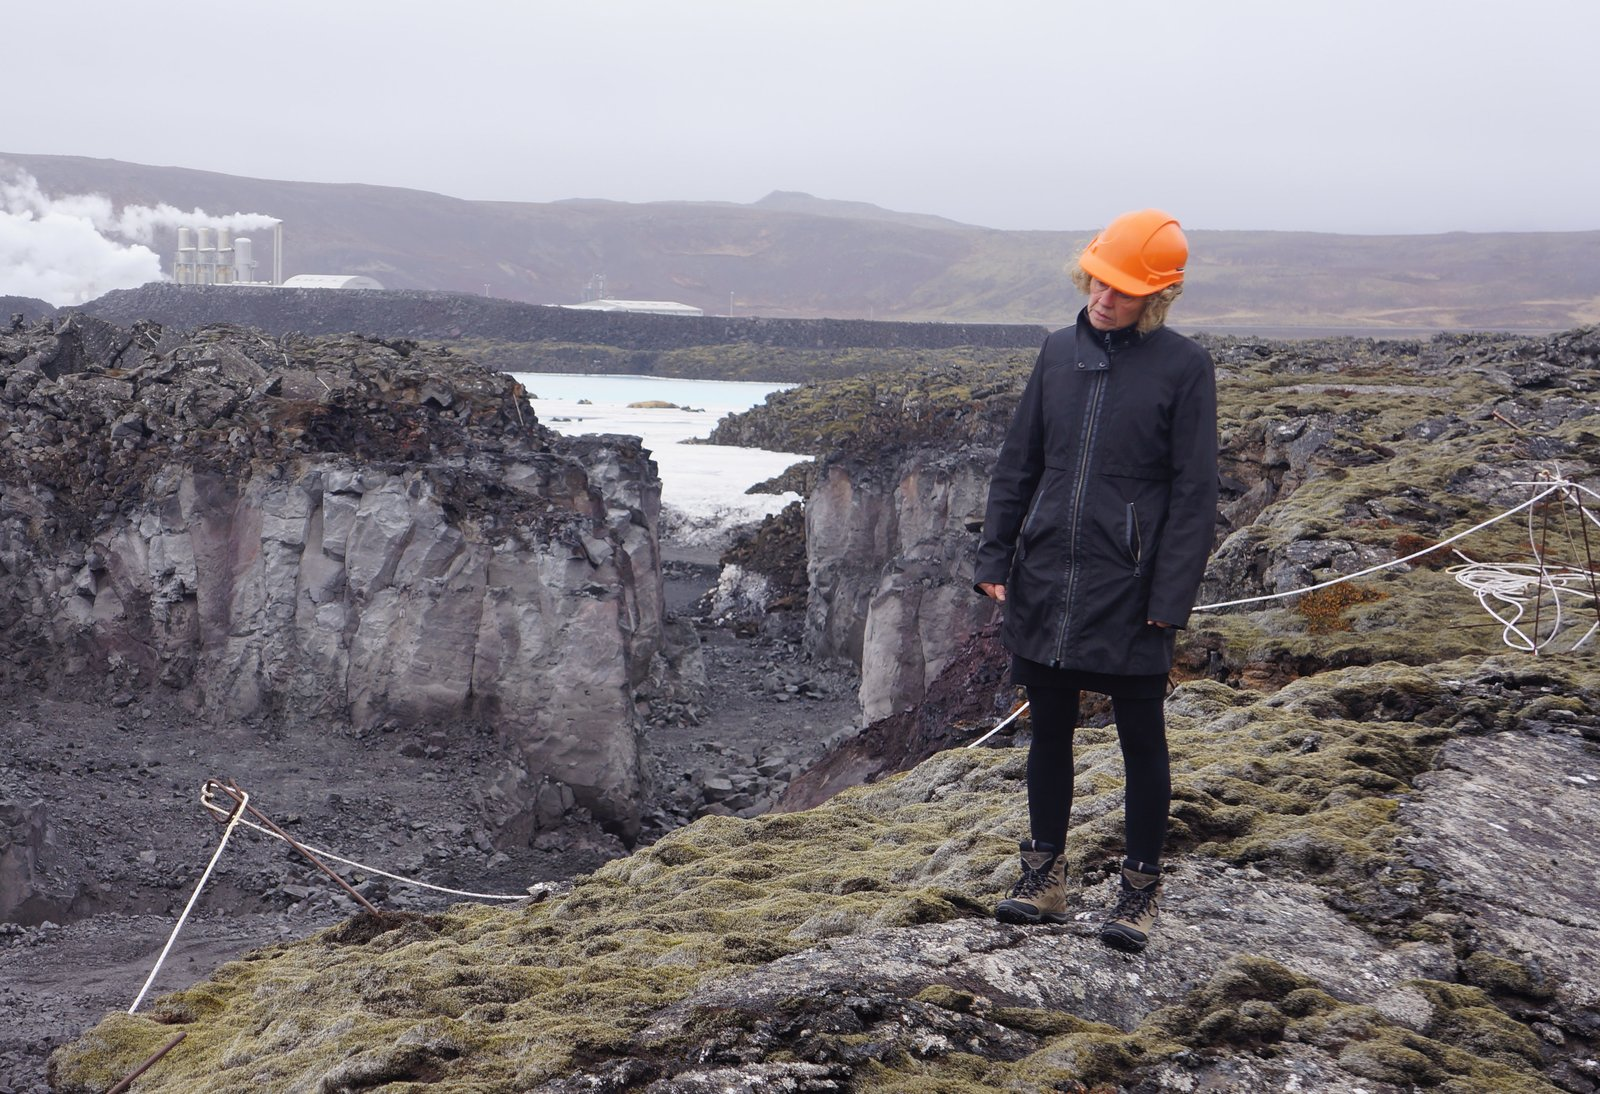 """Architect Sigríður Sigþórsdóttir of BASALT Architects surveys the environment. """"She knows every inch of this land,"""" says Sigurdur Thorsteinsson of Design Group Italia, who has worked with the architect on the site for the past 20 years.  Photo 3 of 5 in Dive Into the Next Phase of Iceland's Blue Lagoon"""